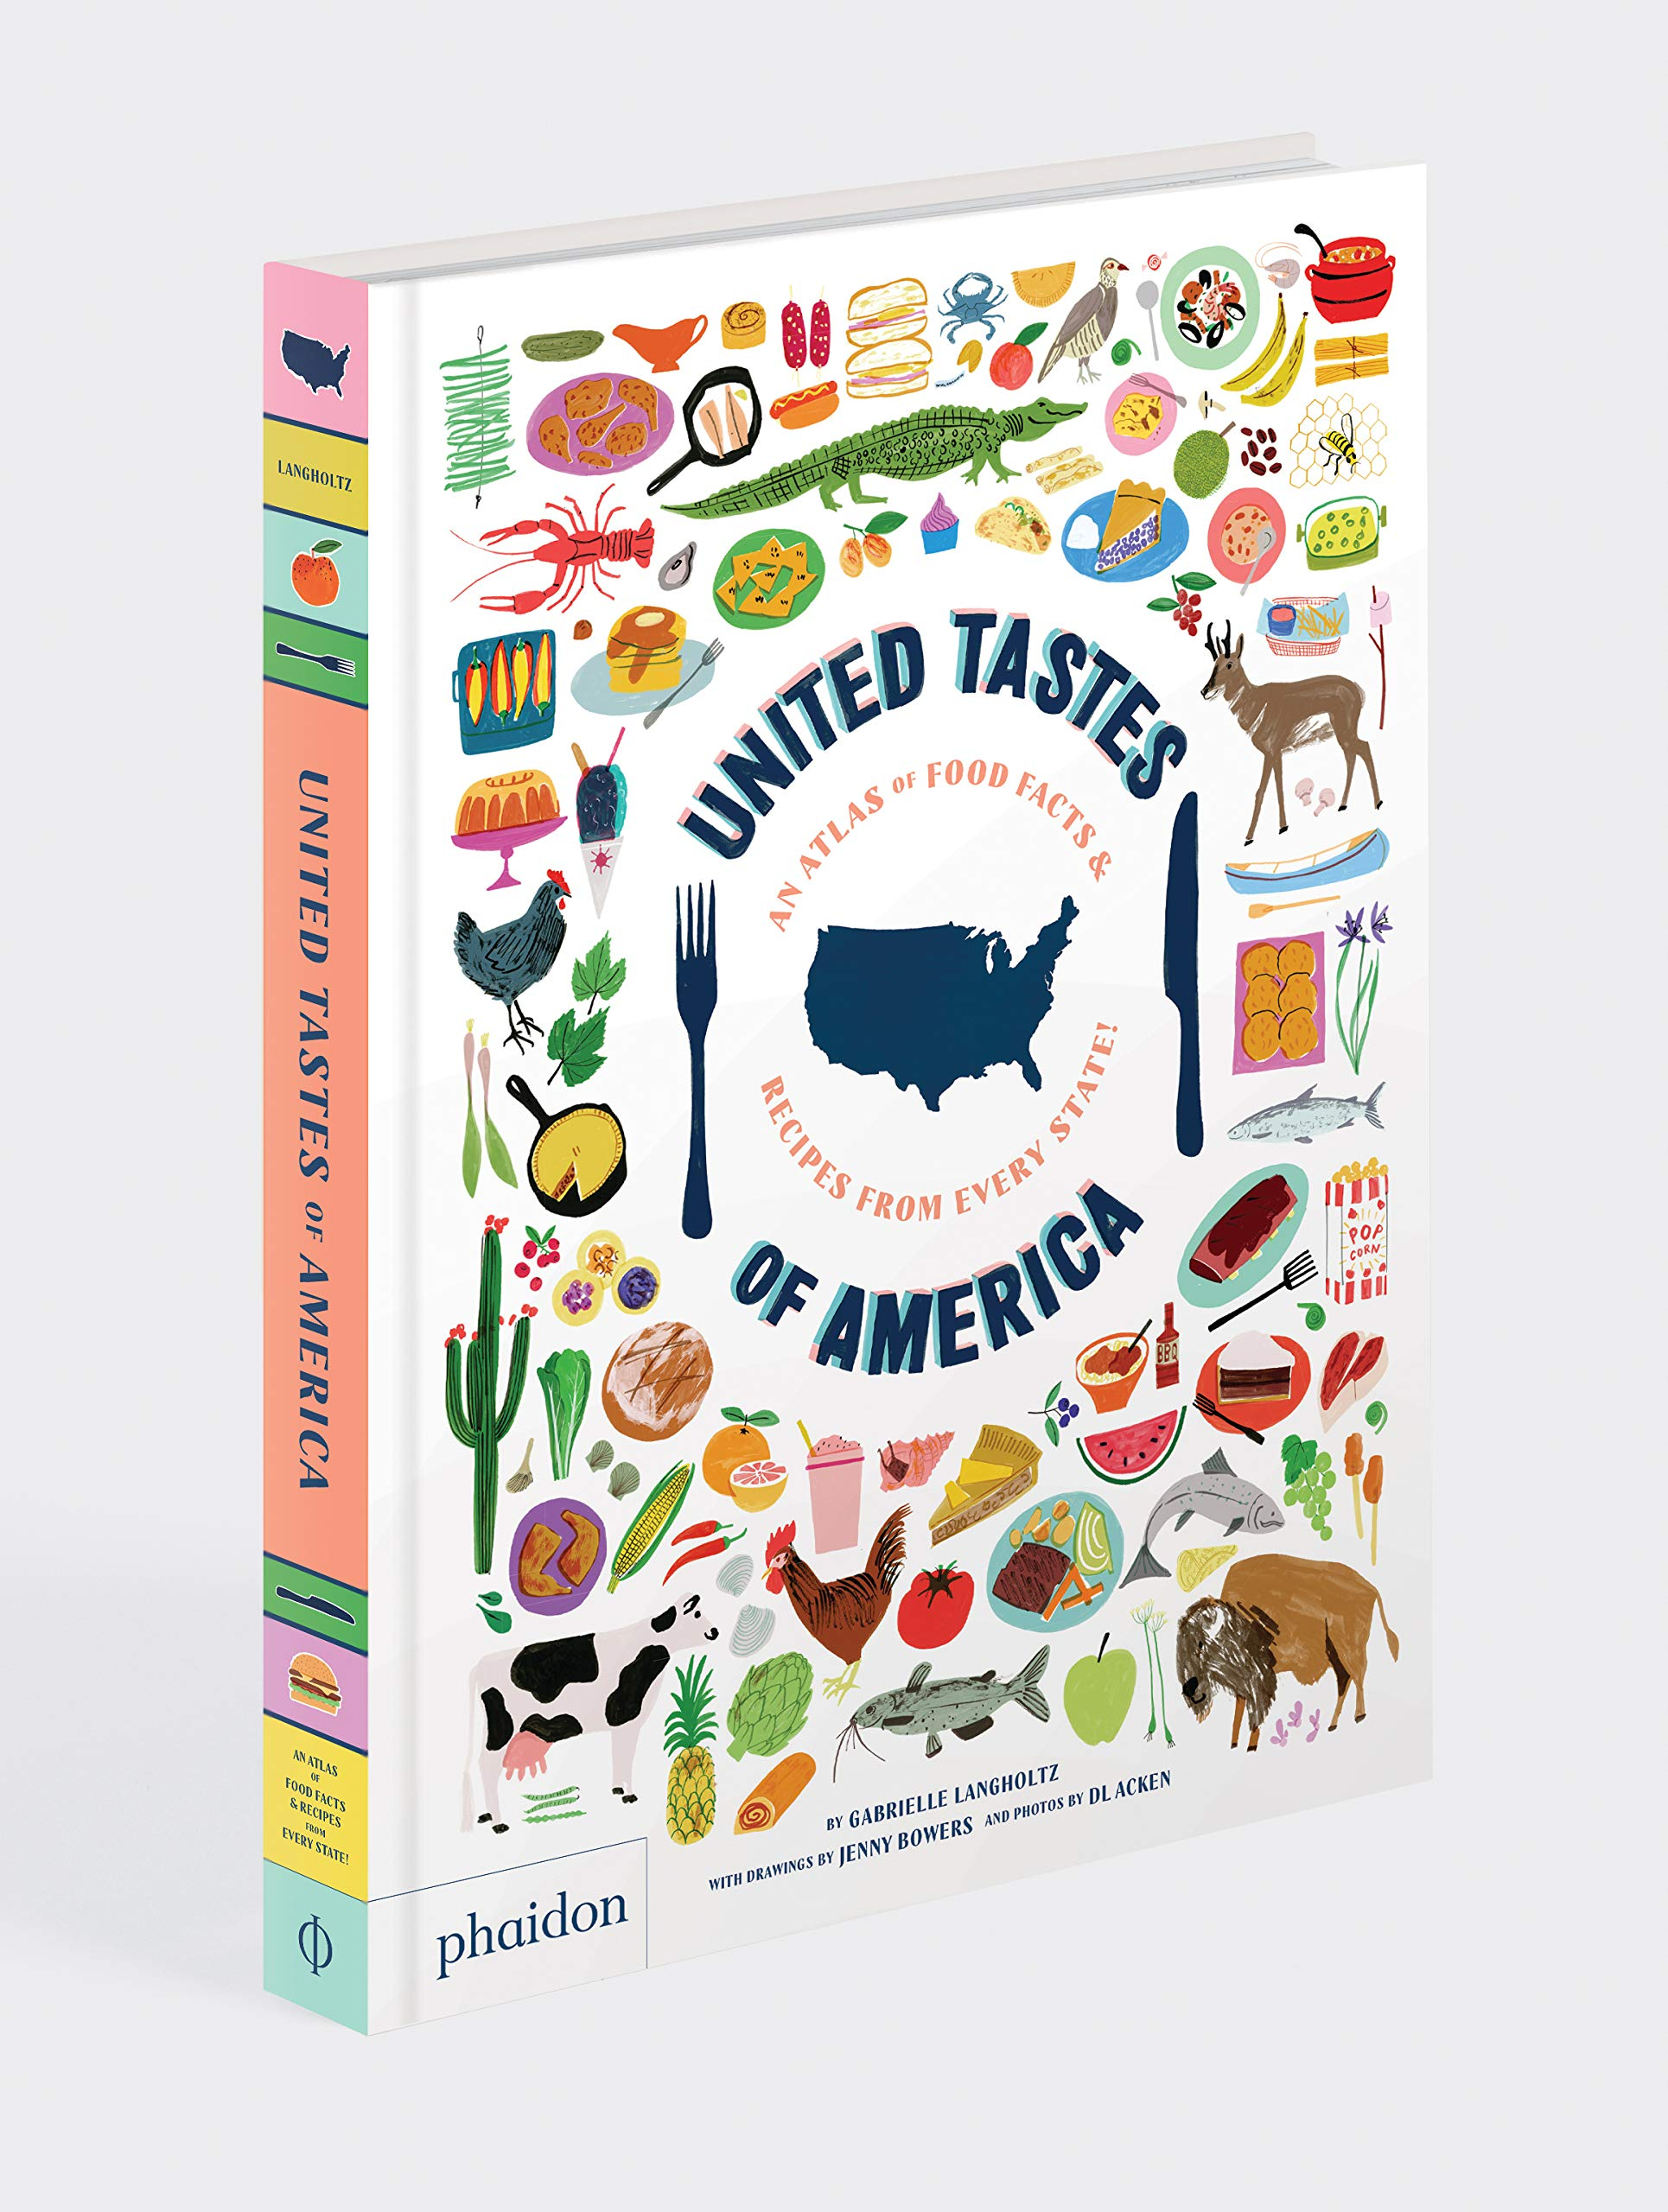 United Tastes of America: This state-by-state cookbook and atlas is the perfect road trip companion